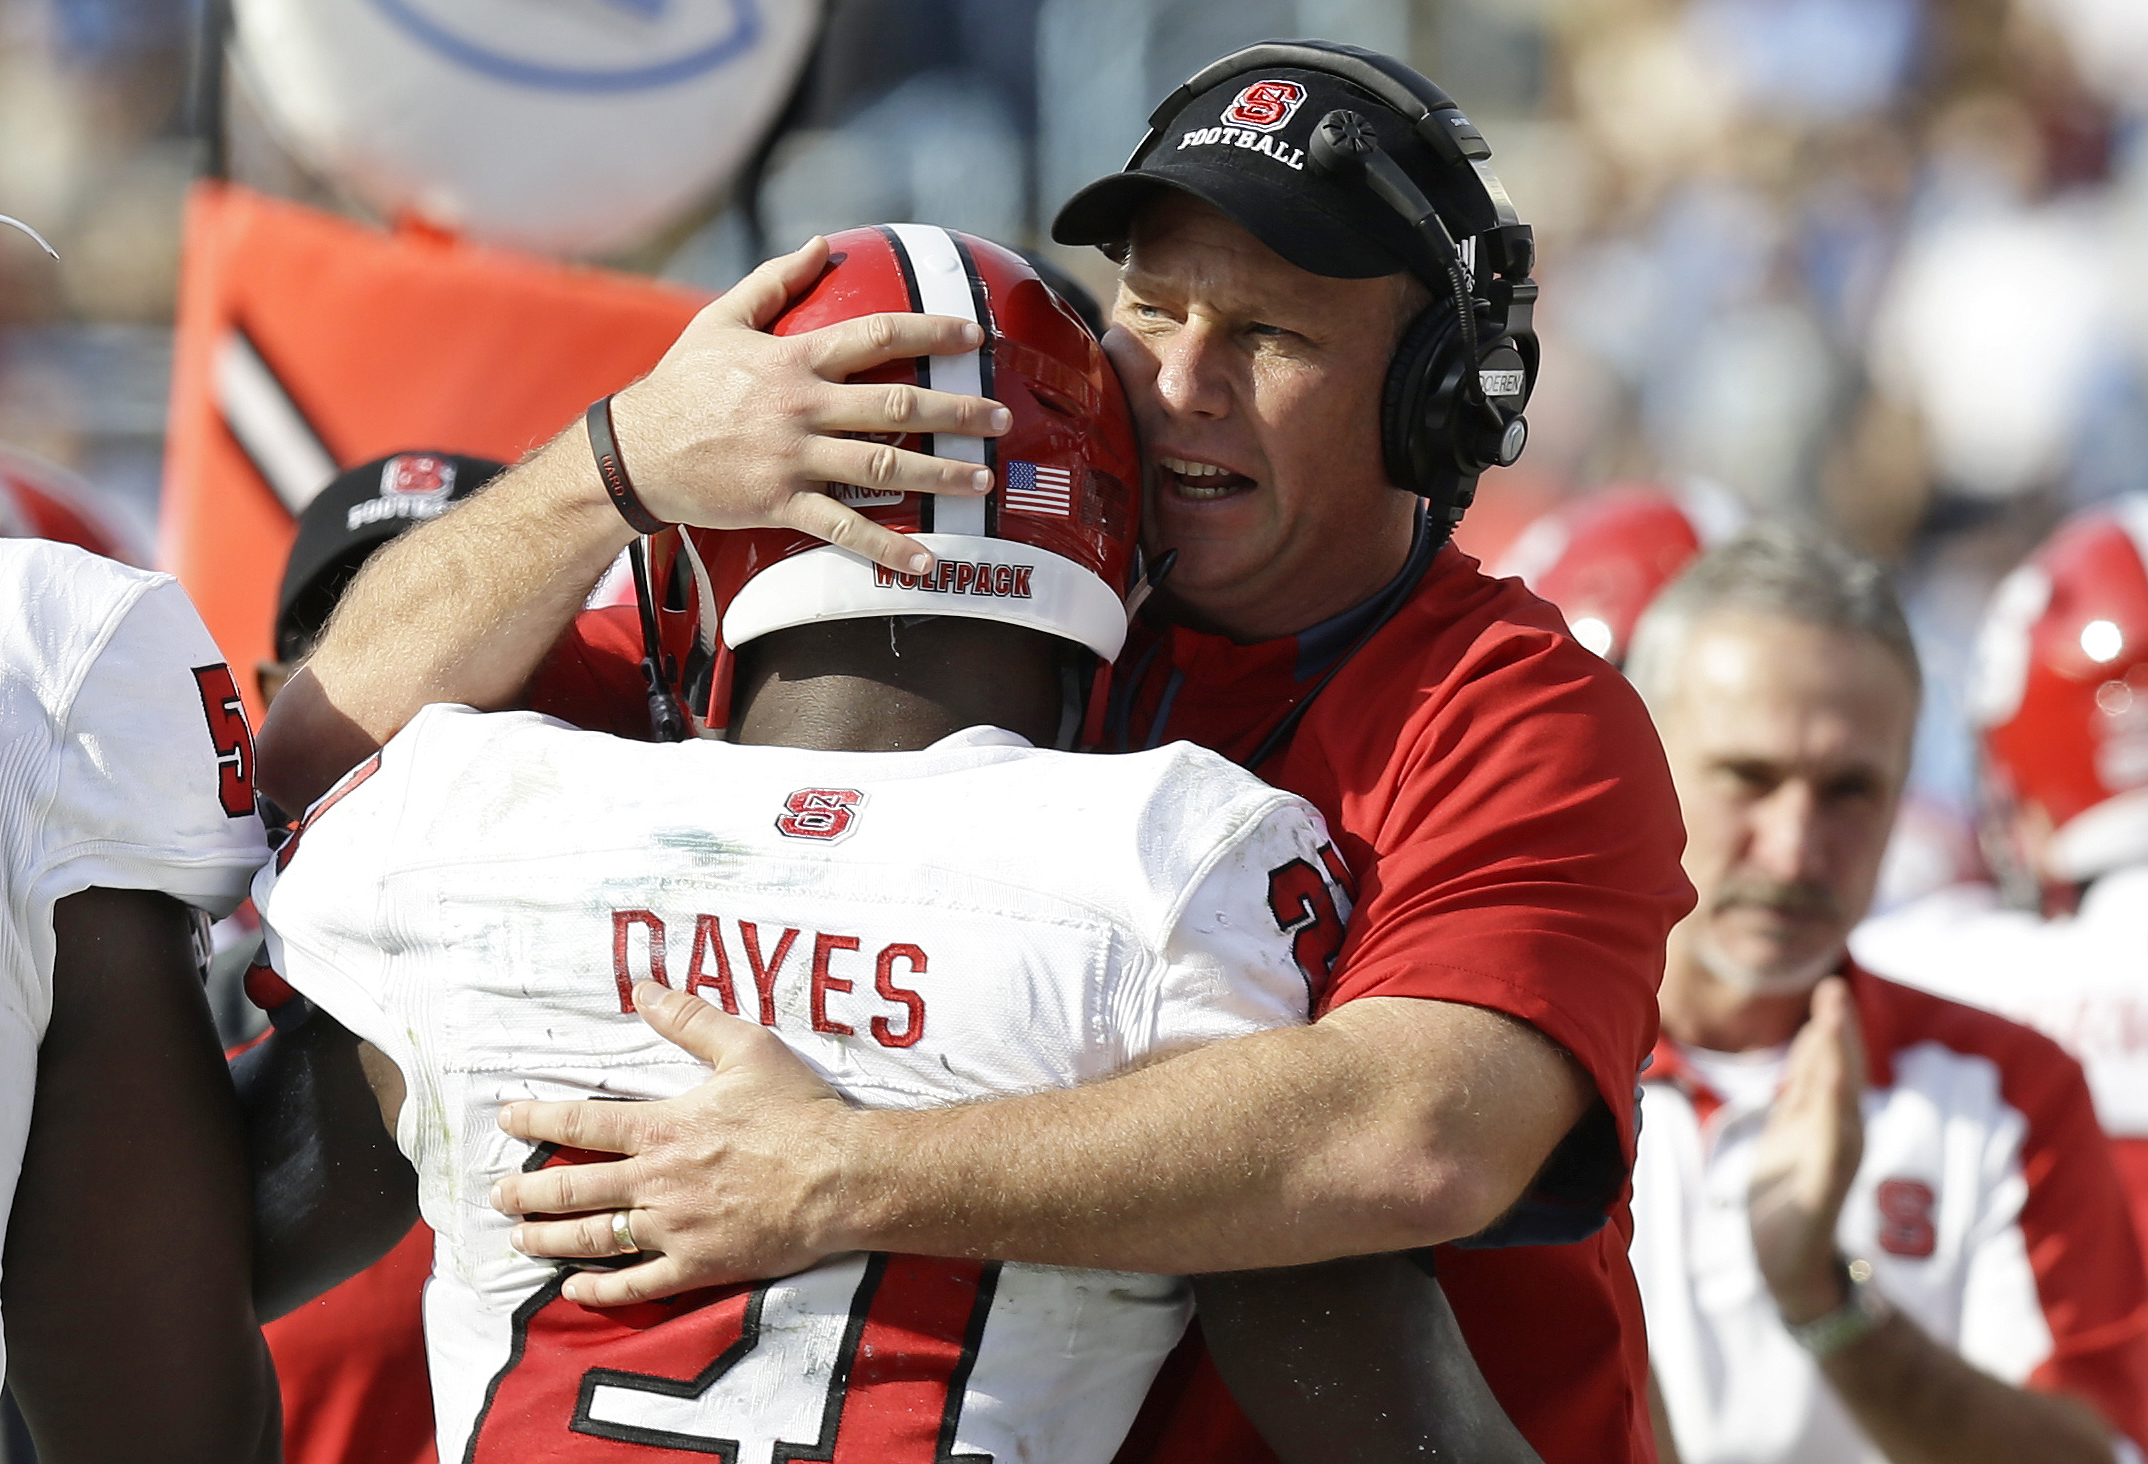 North Carolina State coach Dave Doeren hugs Matthew Dayes (21) following Dayes' touchdown against North Carolina during the first half of an NCAA college football game in Chapel Hill, N.C., Friday, Nov. 25, 2016. North Carolina won 28-21. (AP Photo/Gerry